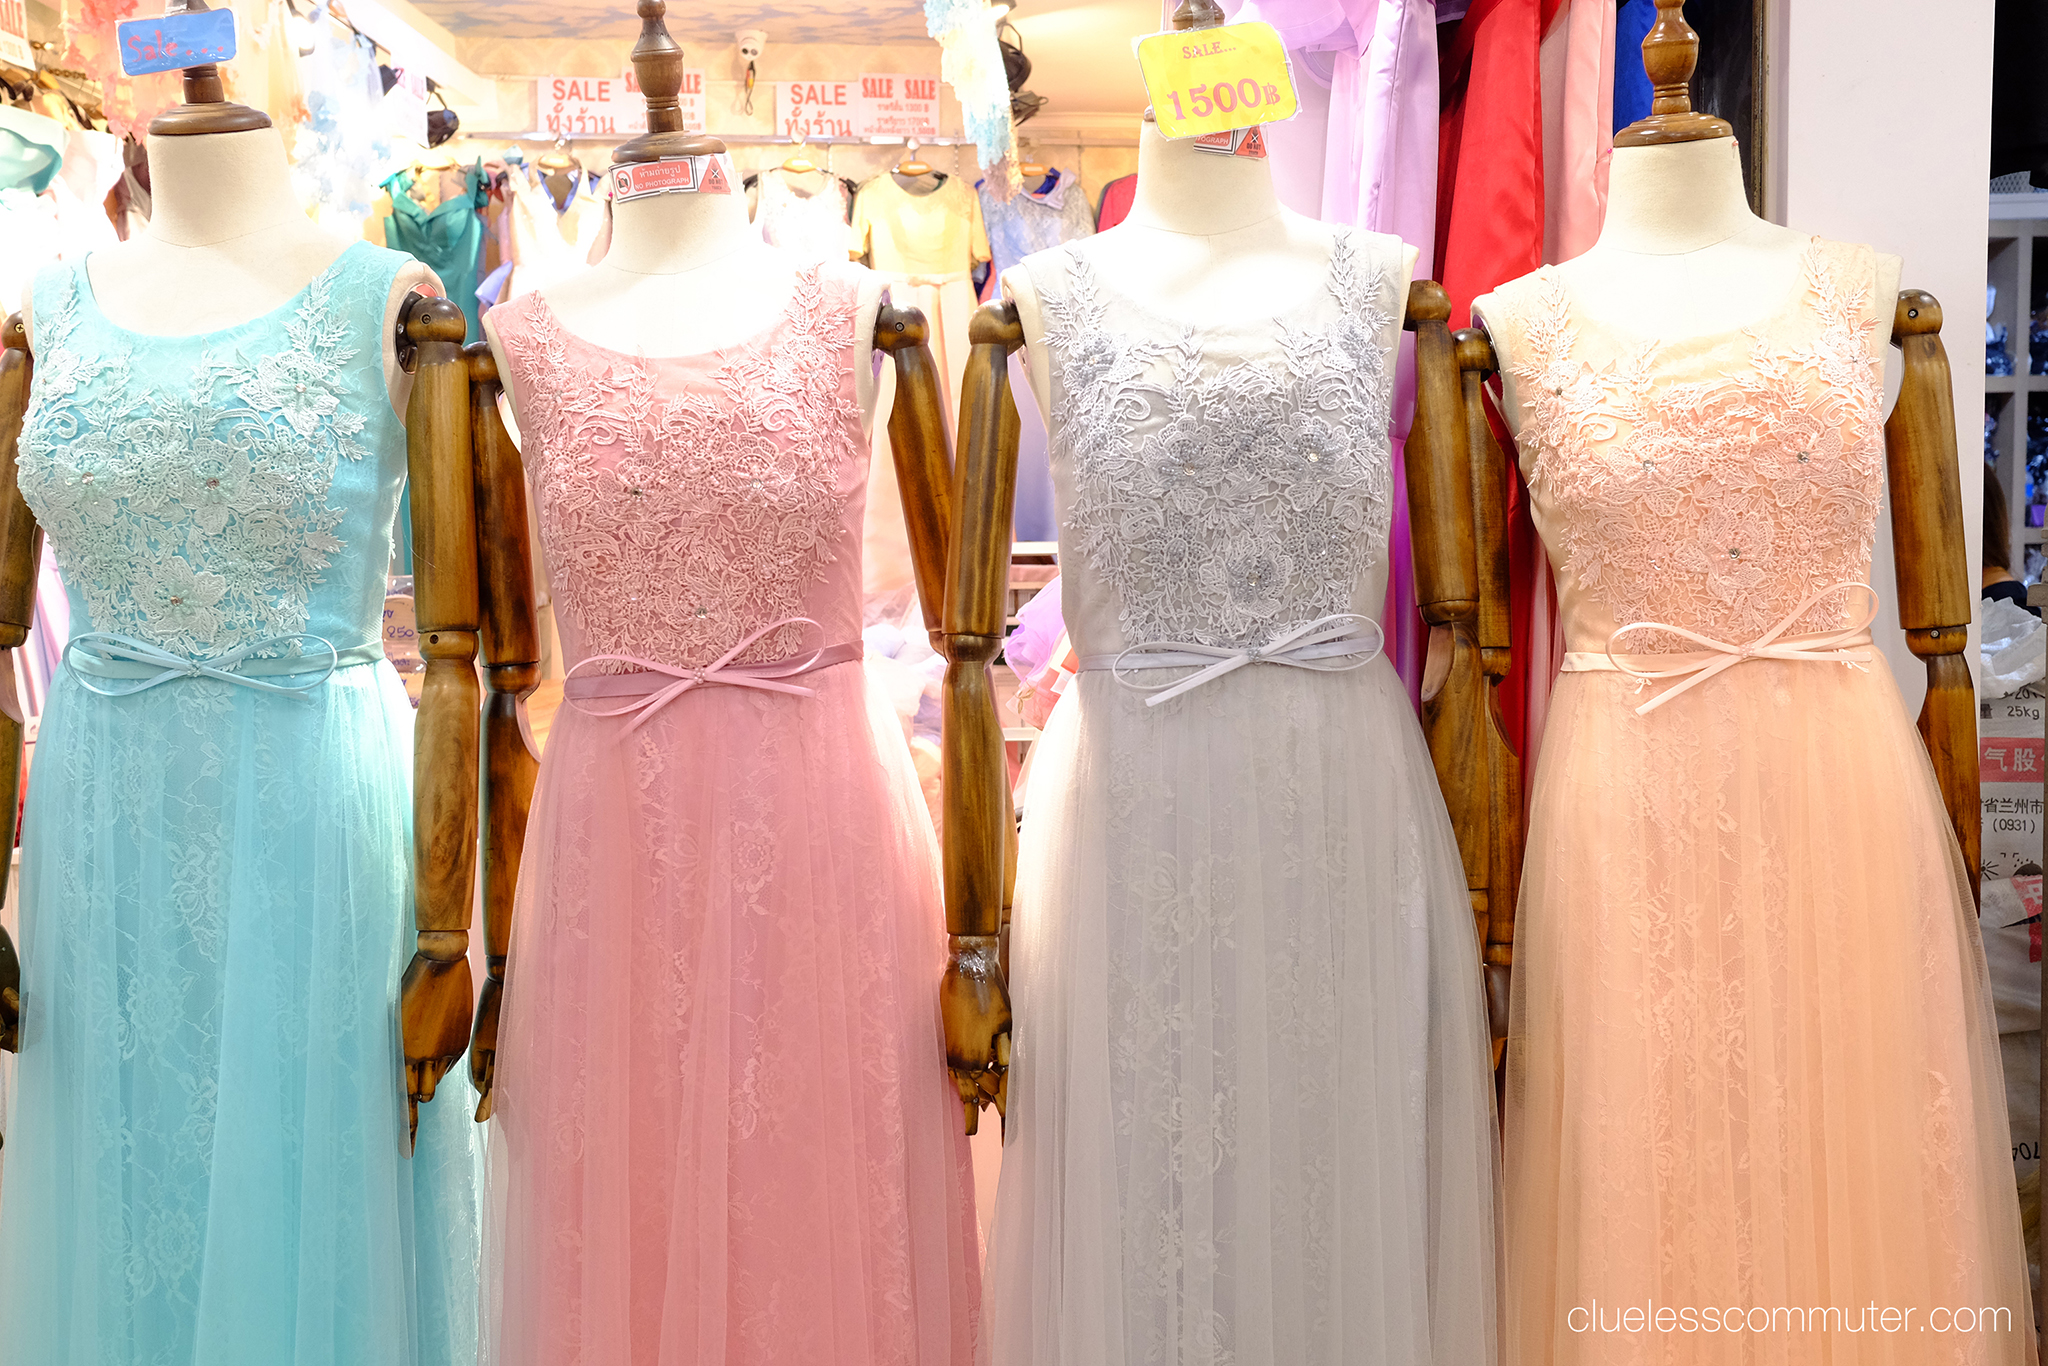 Pastel dresses in Bangkok.